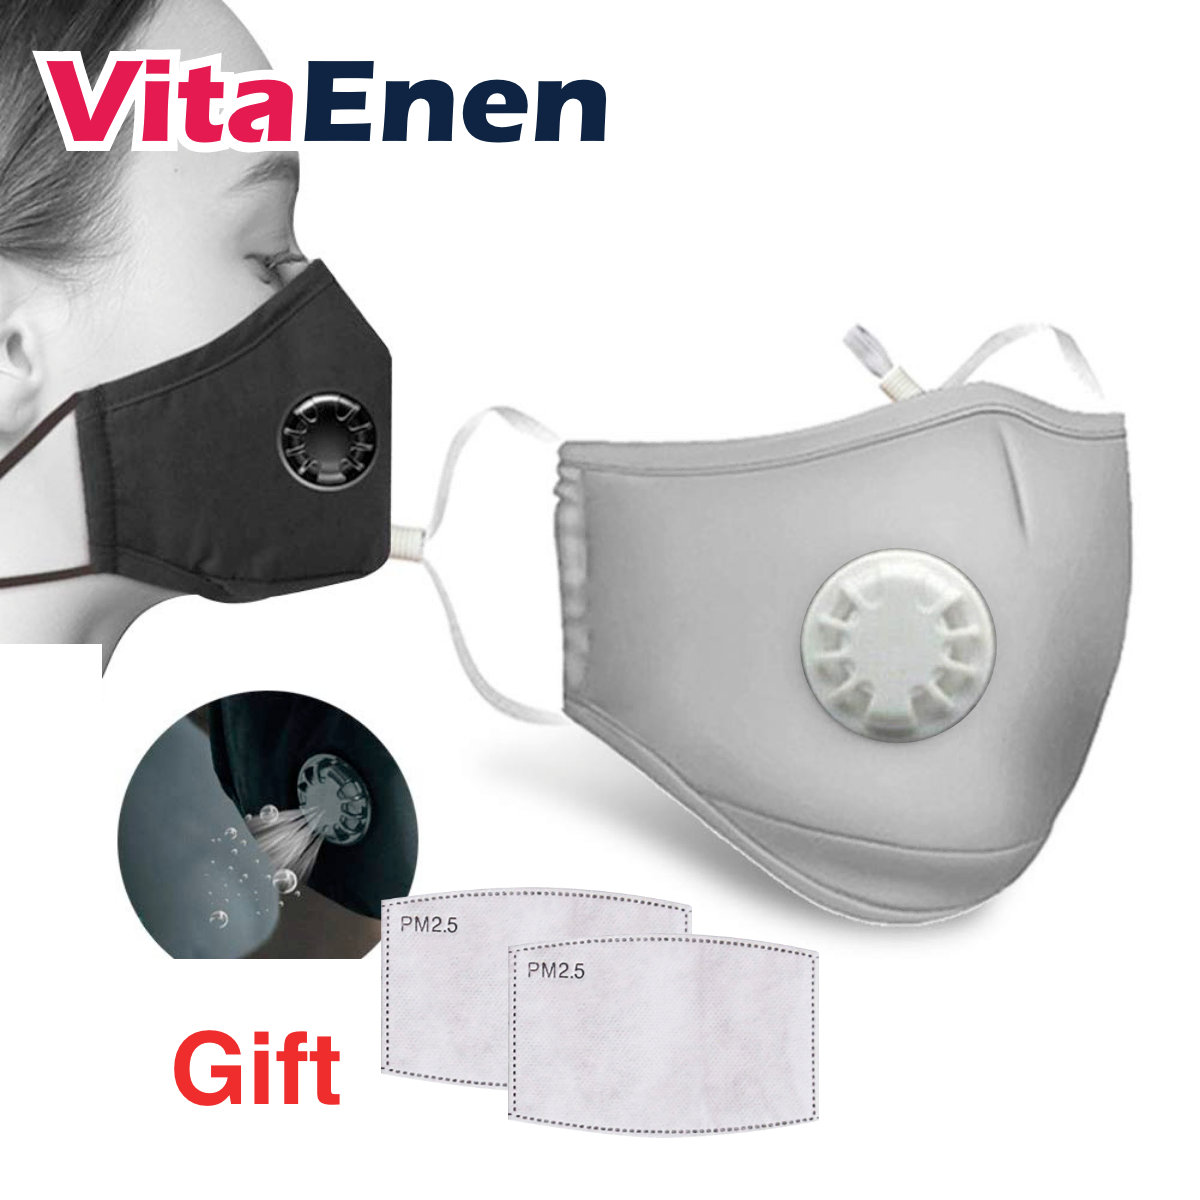 VITAENEN Mouth Cover Anti Fog Haze Respirator Filter,100% Cotton 5 layer Unisex Men Women Cycling Anti Haze Dust Mouth Face Respirator,PM2.5 anti-fog and dustproof Mouth,Face Mouth With Replaceable Filter